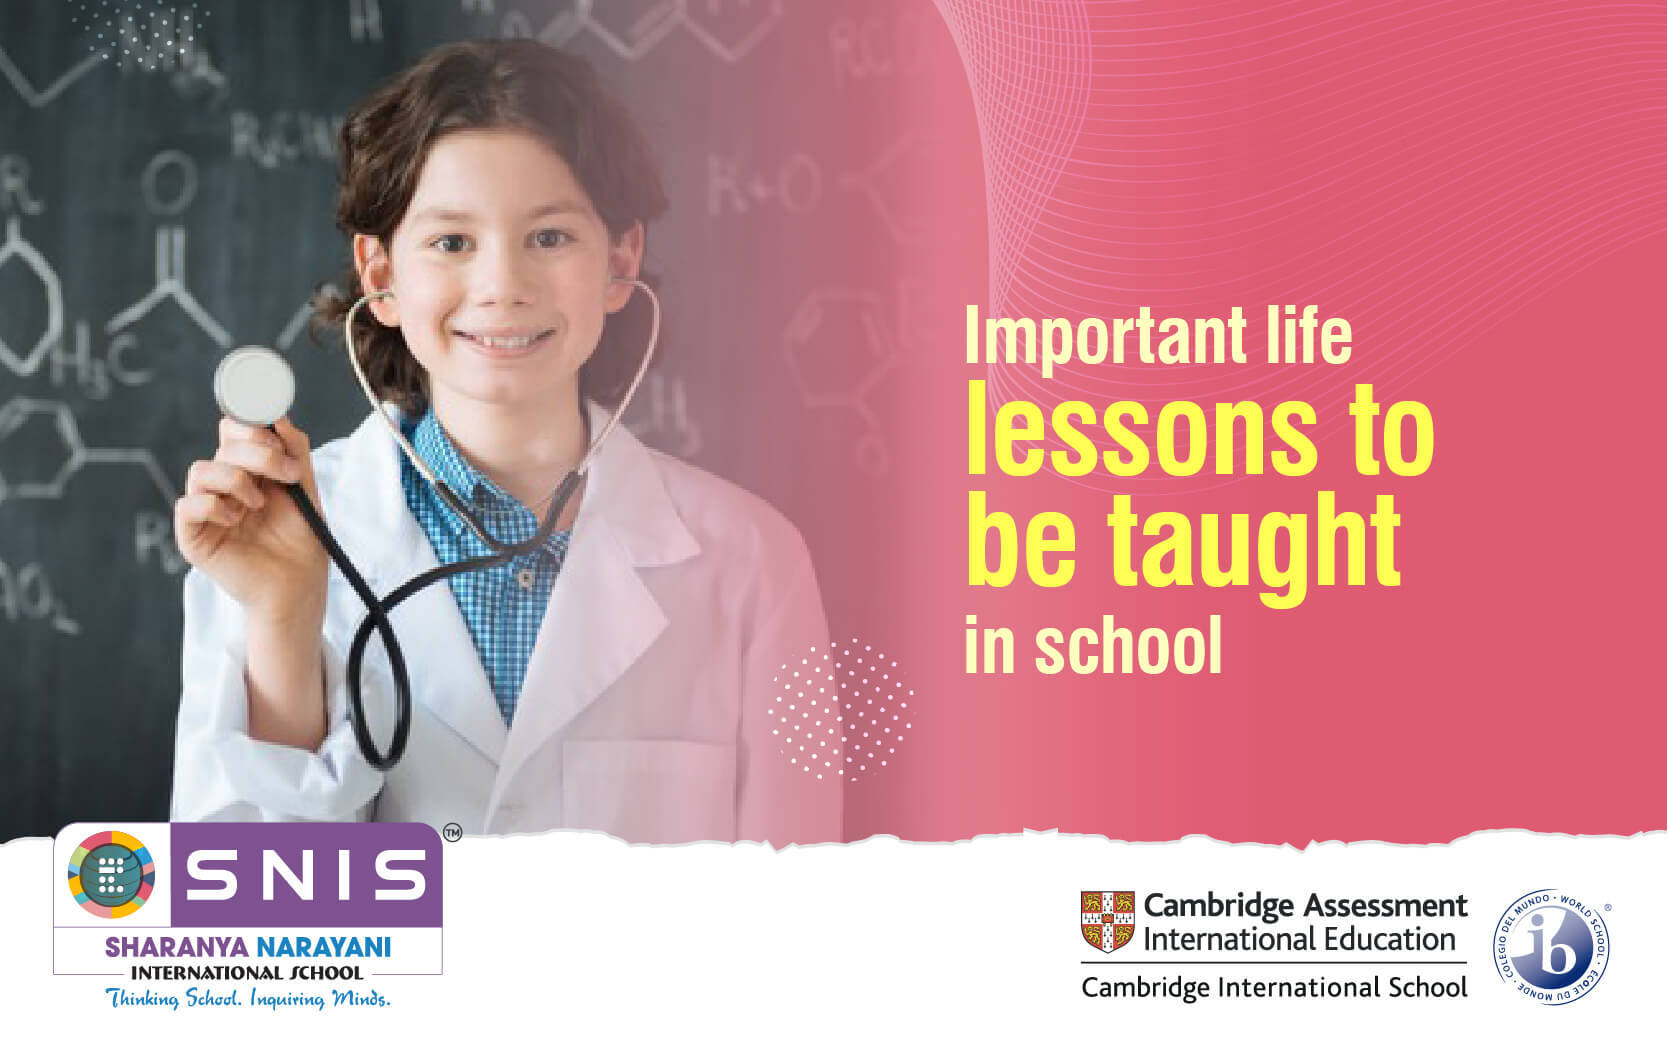 Important life lessons to be taught in school by SNIS Top international schools in bangalore